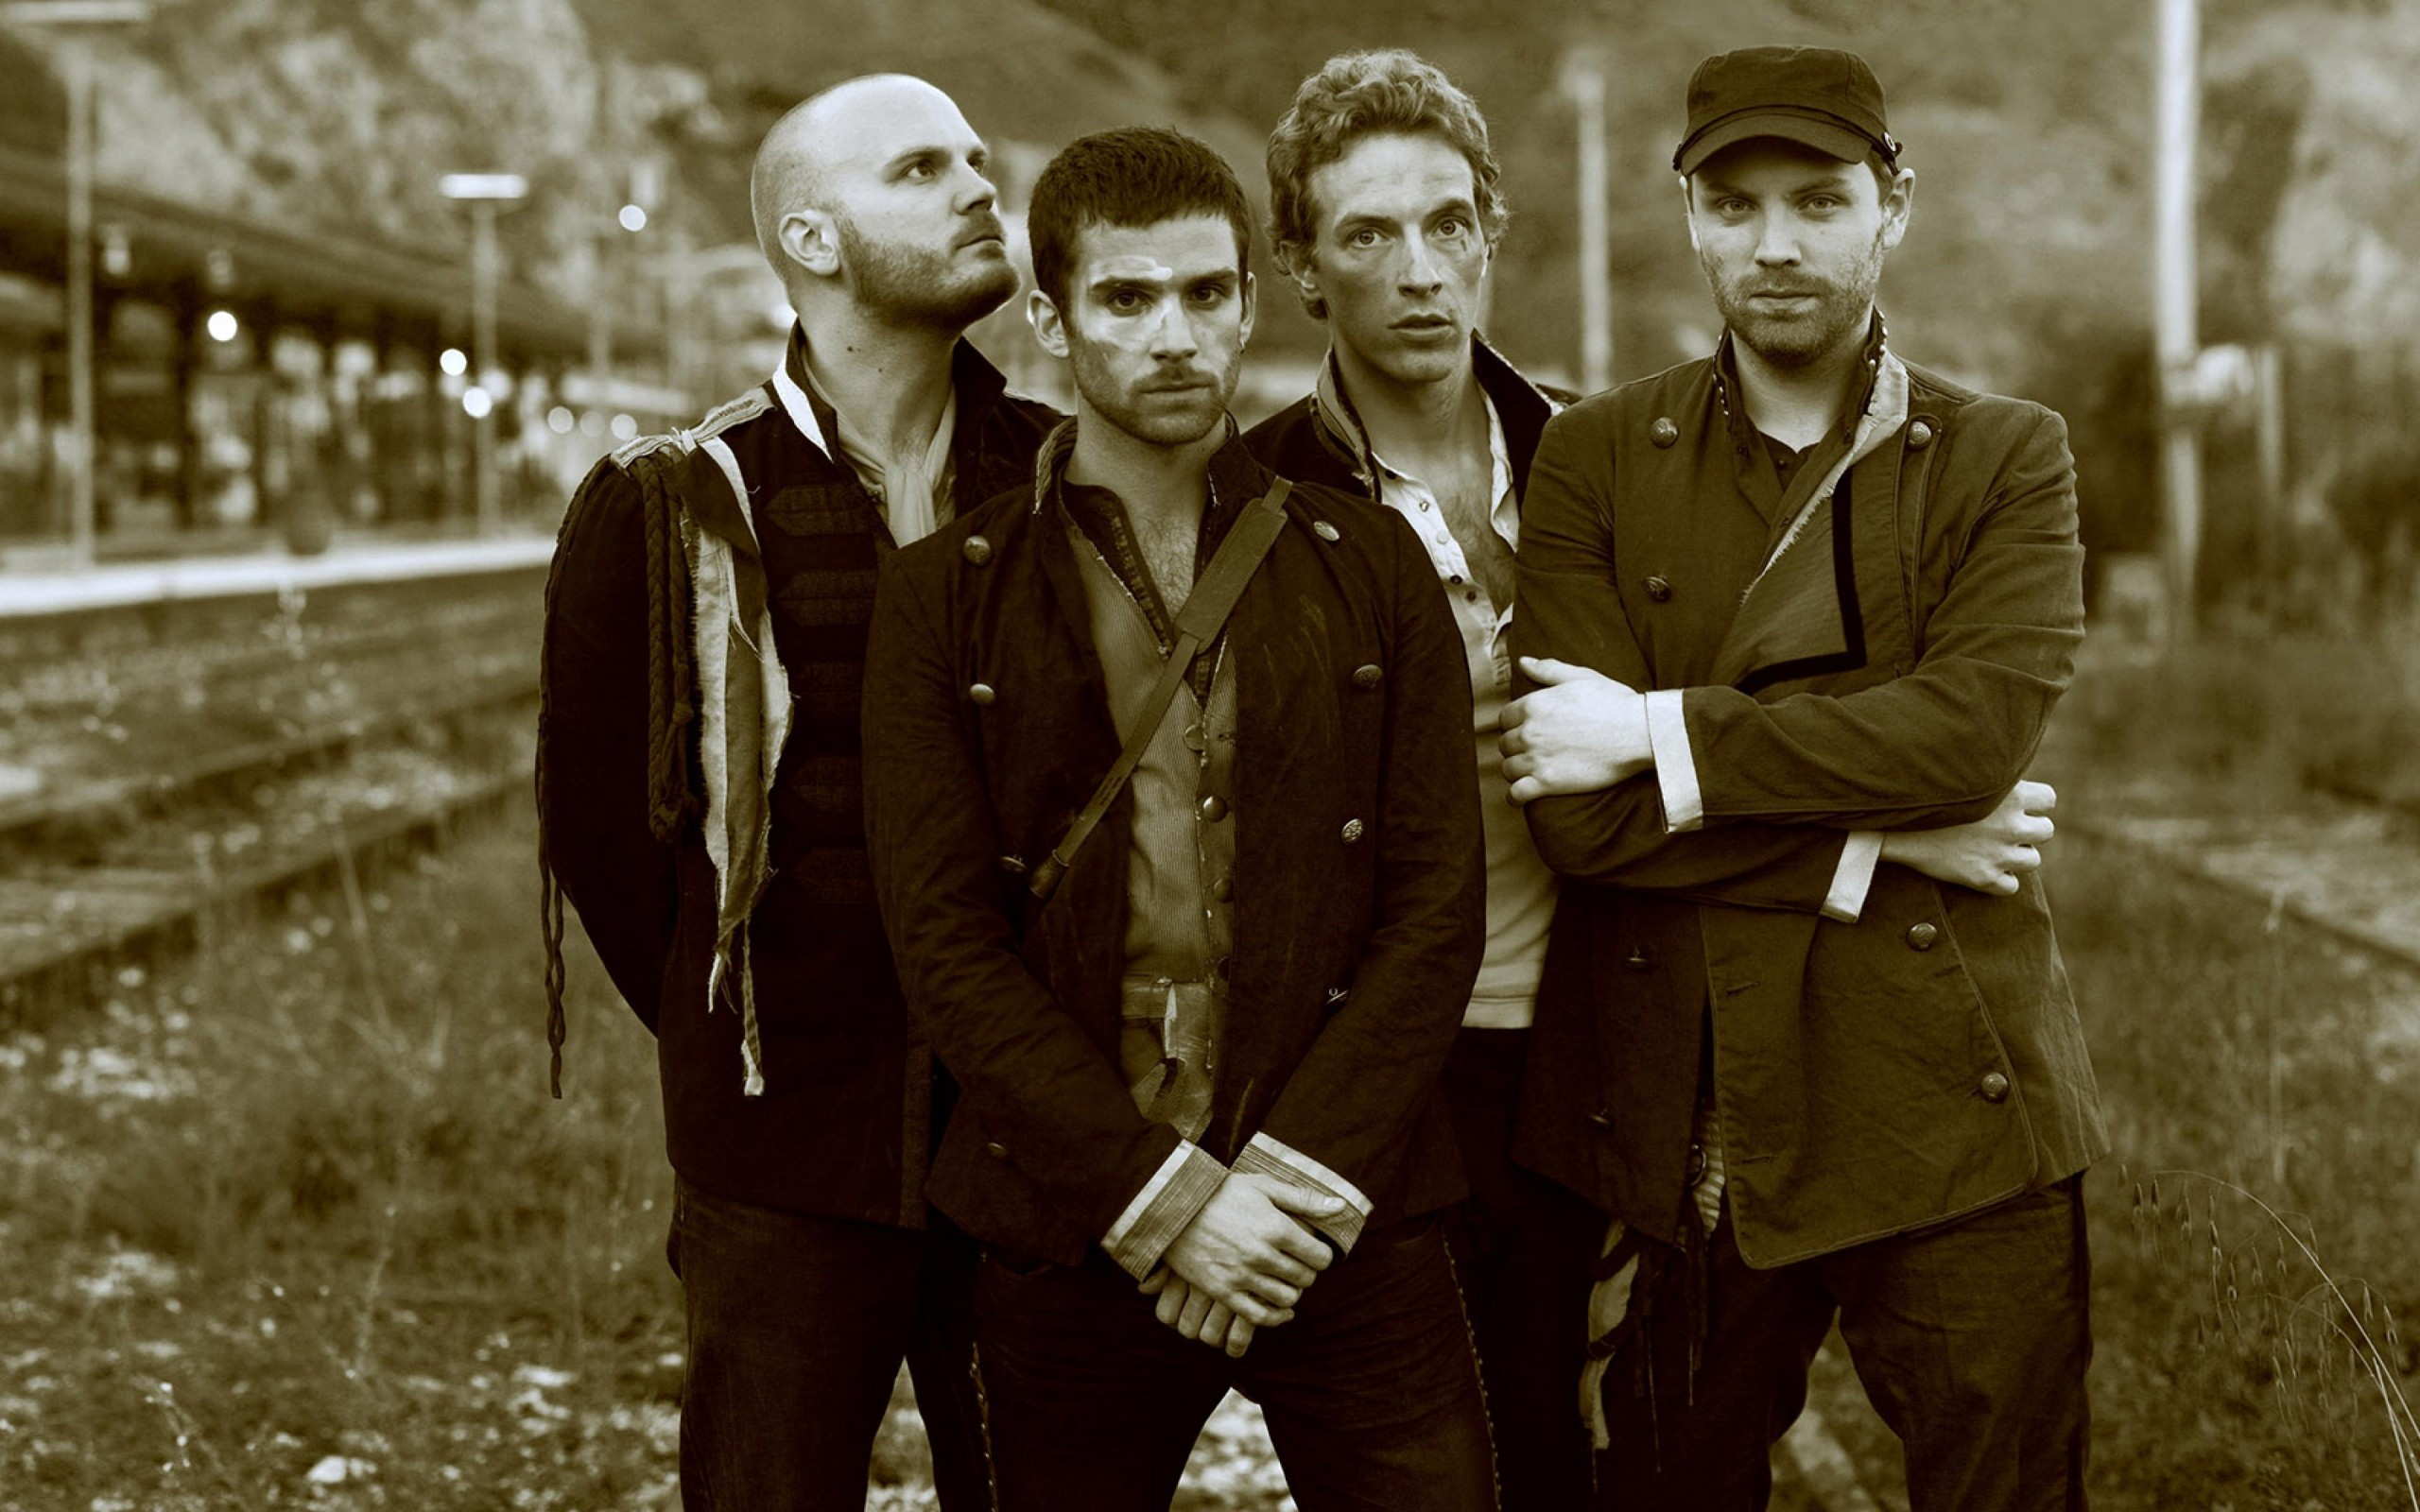 Coldplay Band Sepia Wallpaper for Desktop 2560x1600